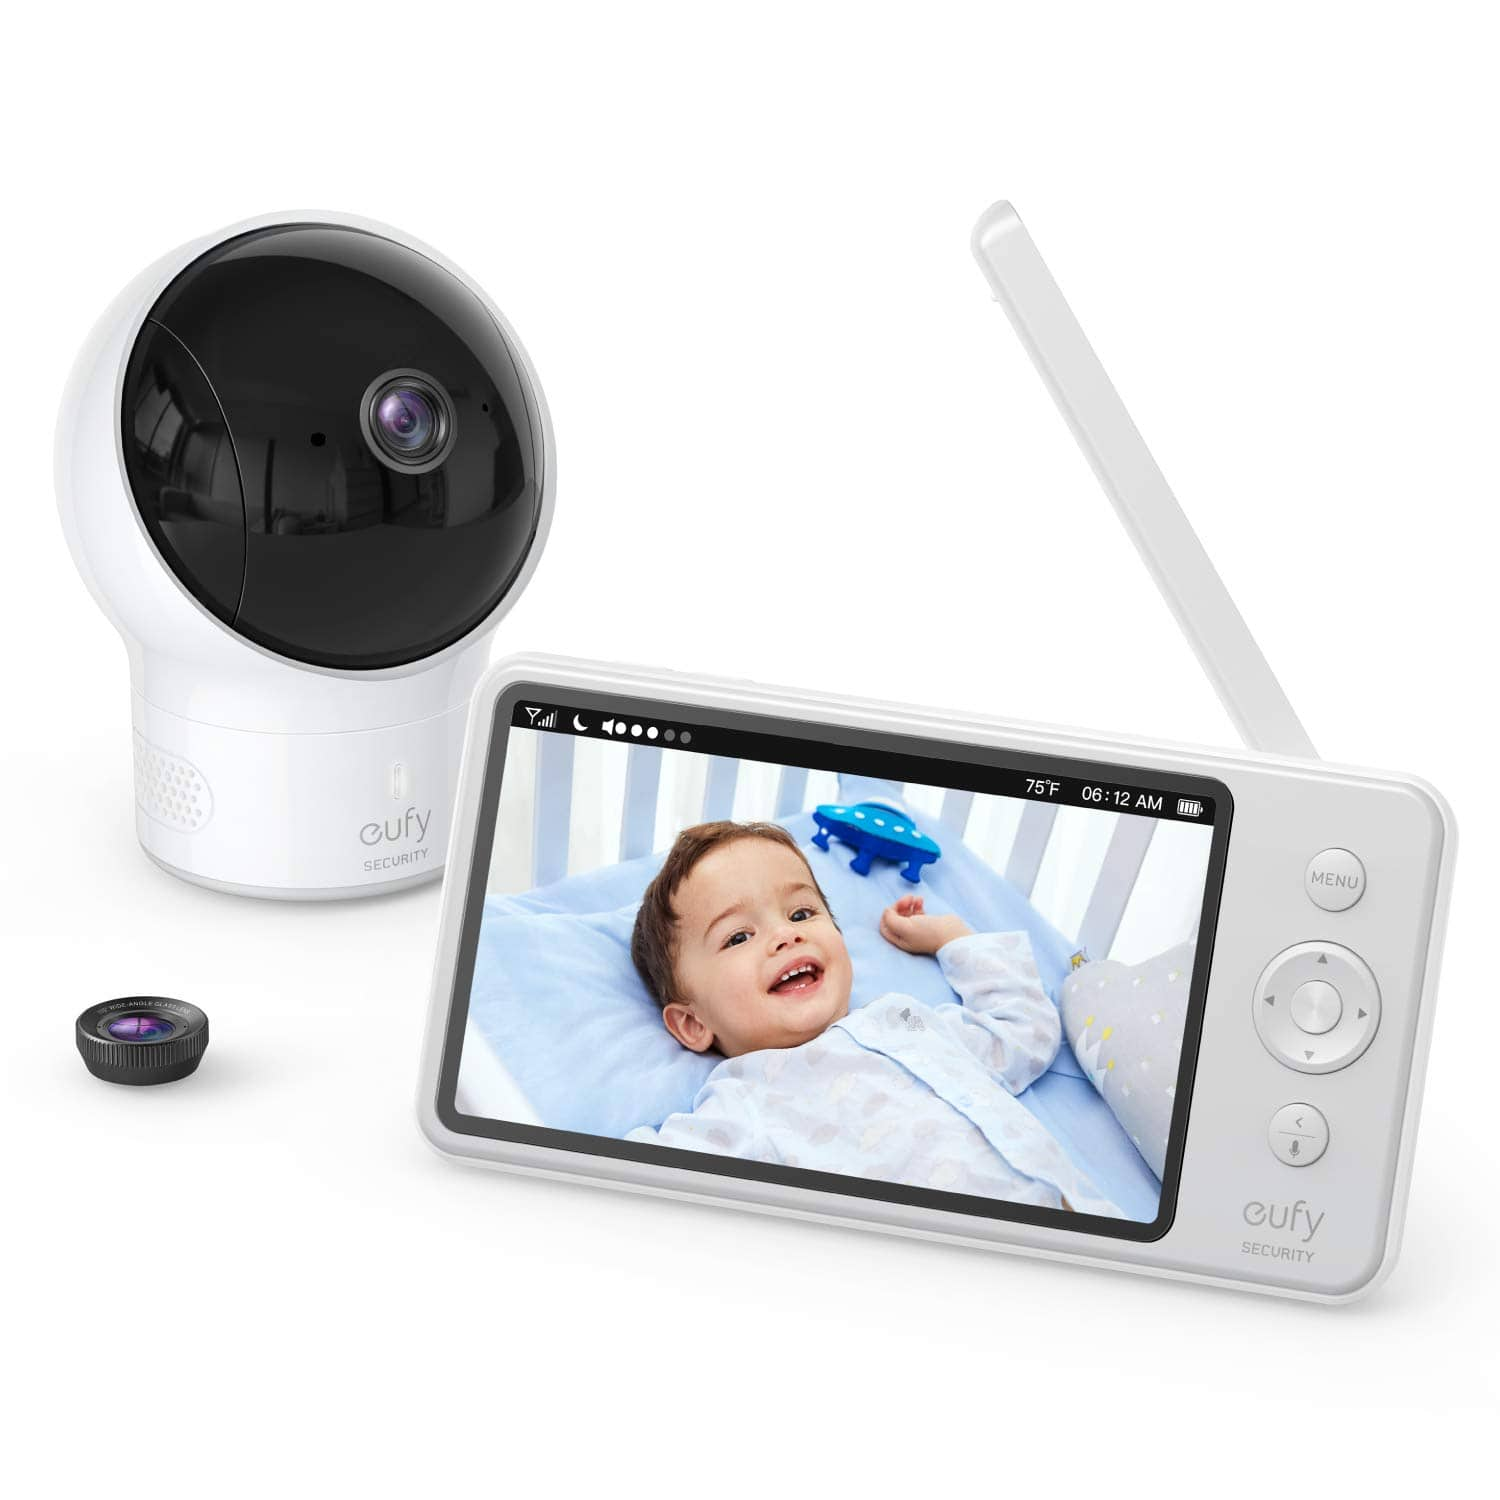 Eufy Security Video Baby Monitor (720p HD Resolution) $109.99 + Free Shipping